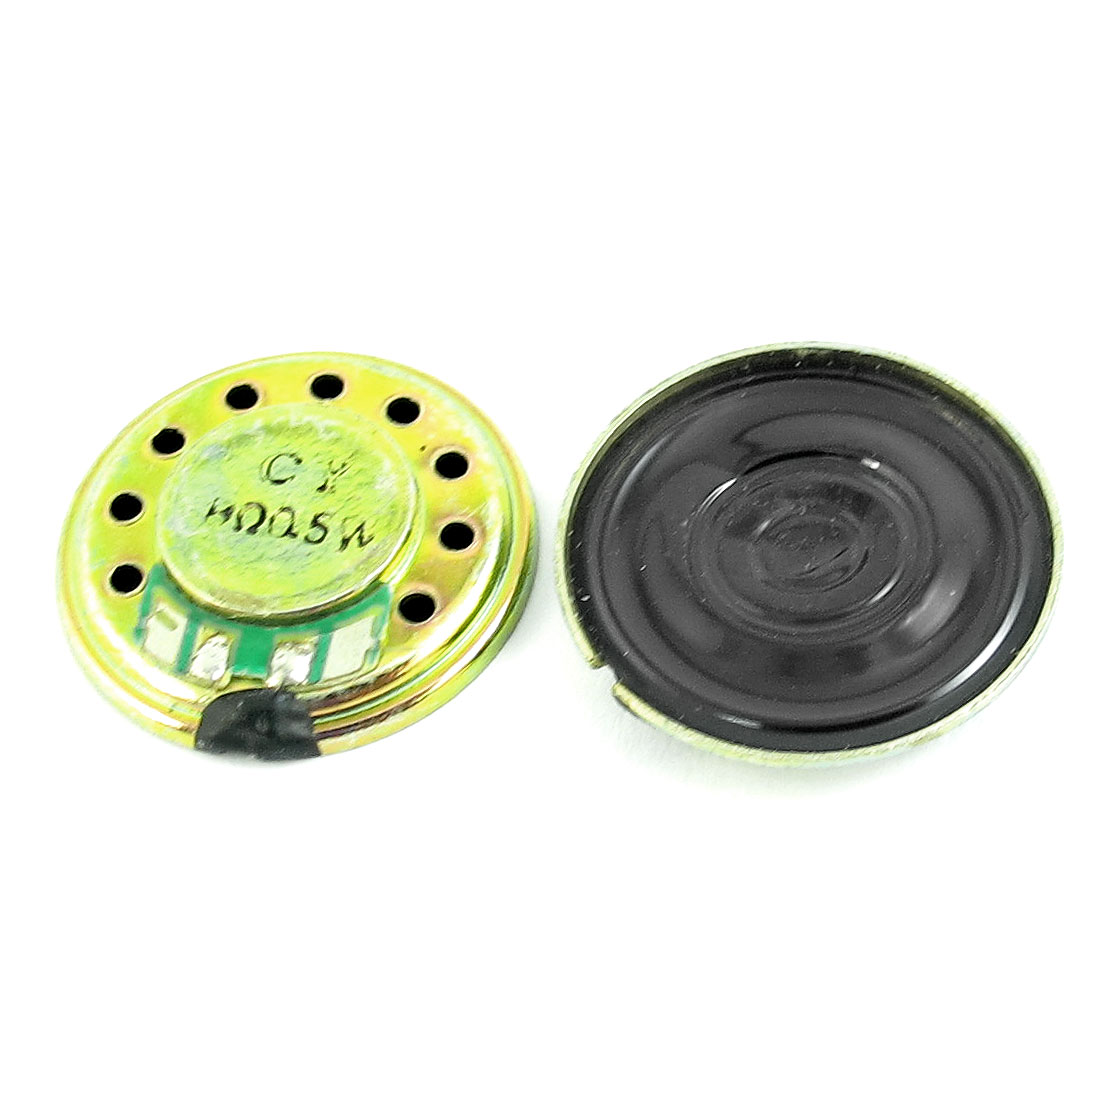 2 Pcs 0.5W 8 Ohm 20mm Dia Metal Shell Magnet Speaker Horn Loudspeaker for Radio Electric Toys